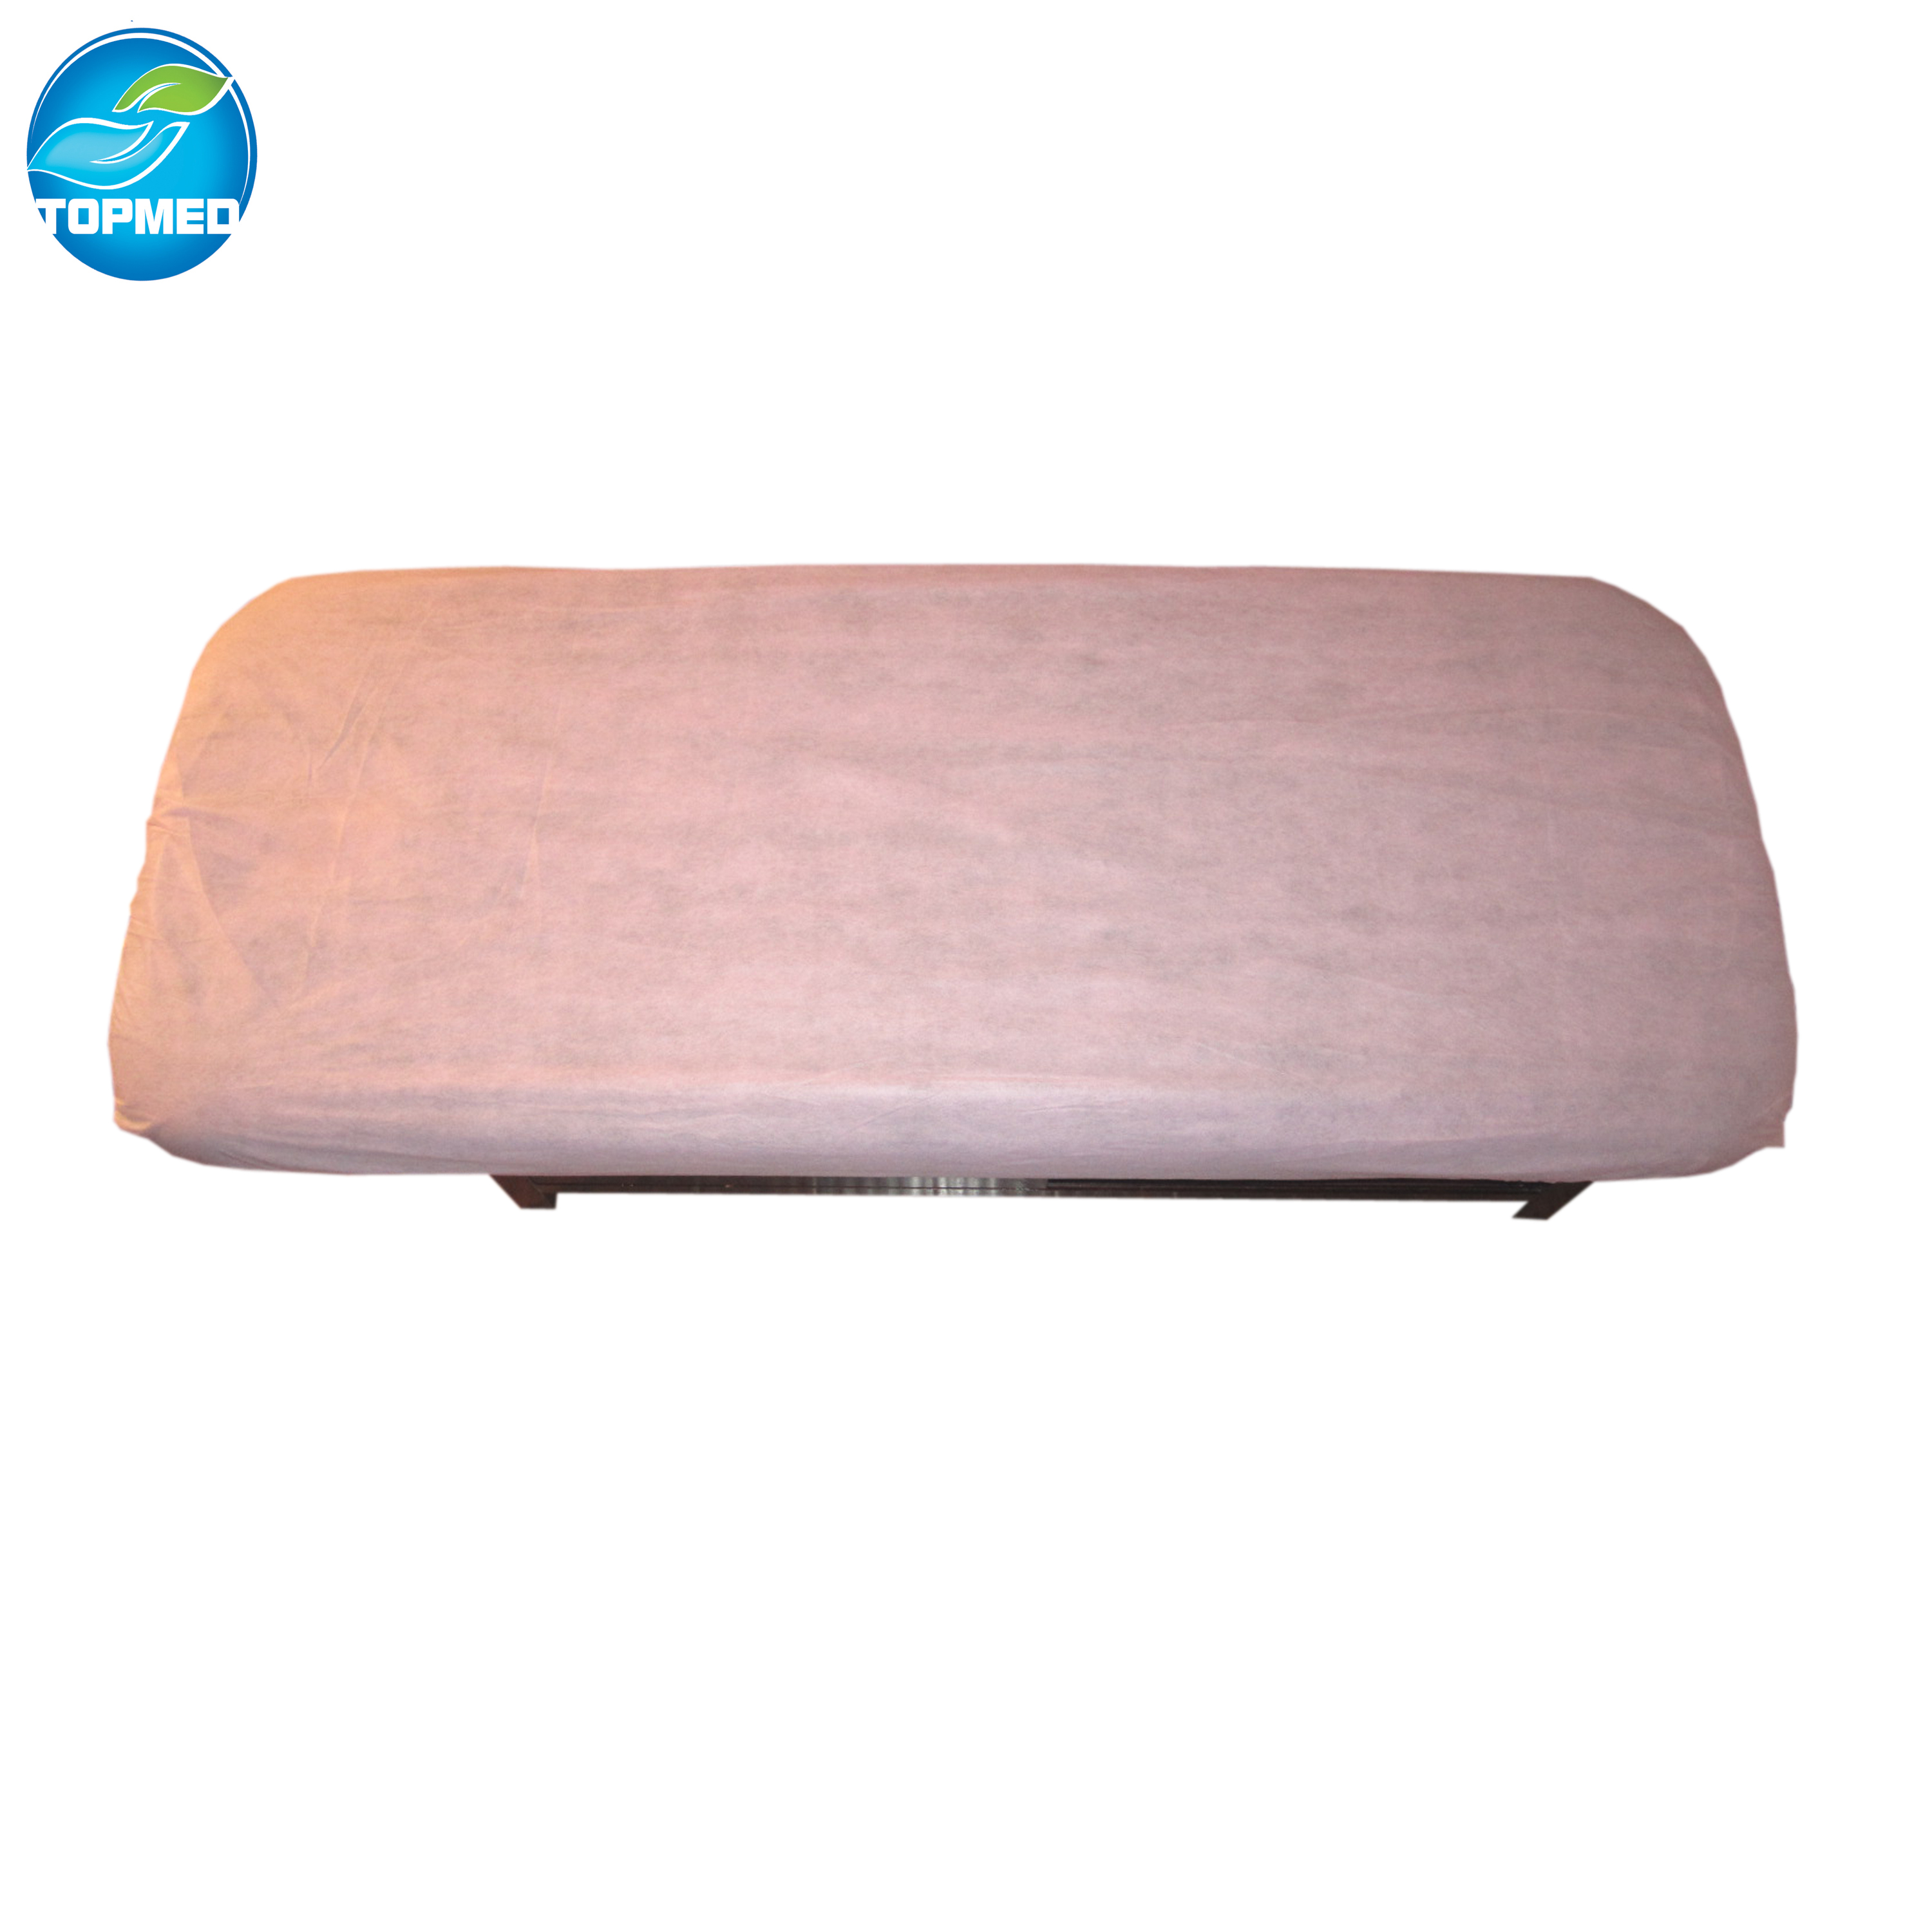 Disposable nonwoven bed cover sheet 4corners with elastic